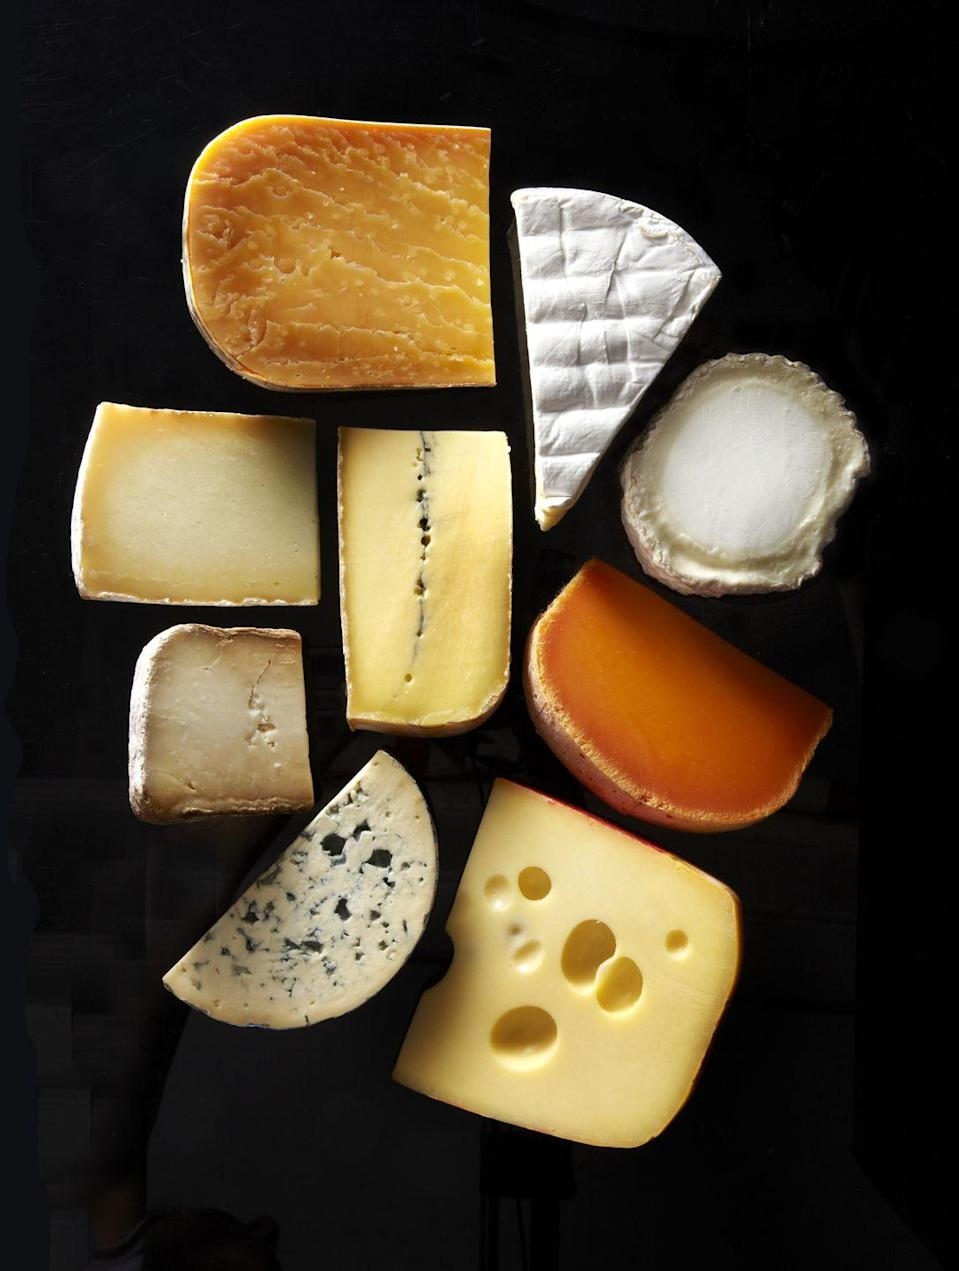 <p>Soft cheeses like ricotta, cream cheese, and goat cheese will separate if they're frozen and then thawed. This will change the texture in weird ways. You could technically try harder varieties like Parmesan or cheddar, though we'd advise you just keep in the fridge instead. </p>